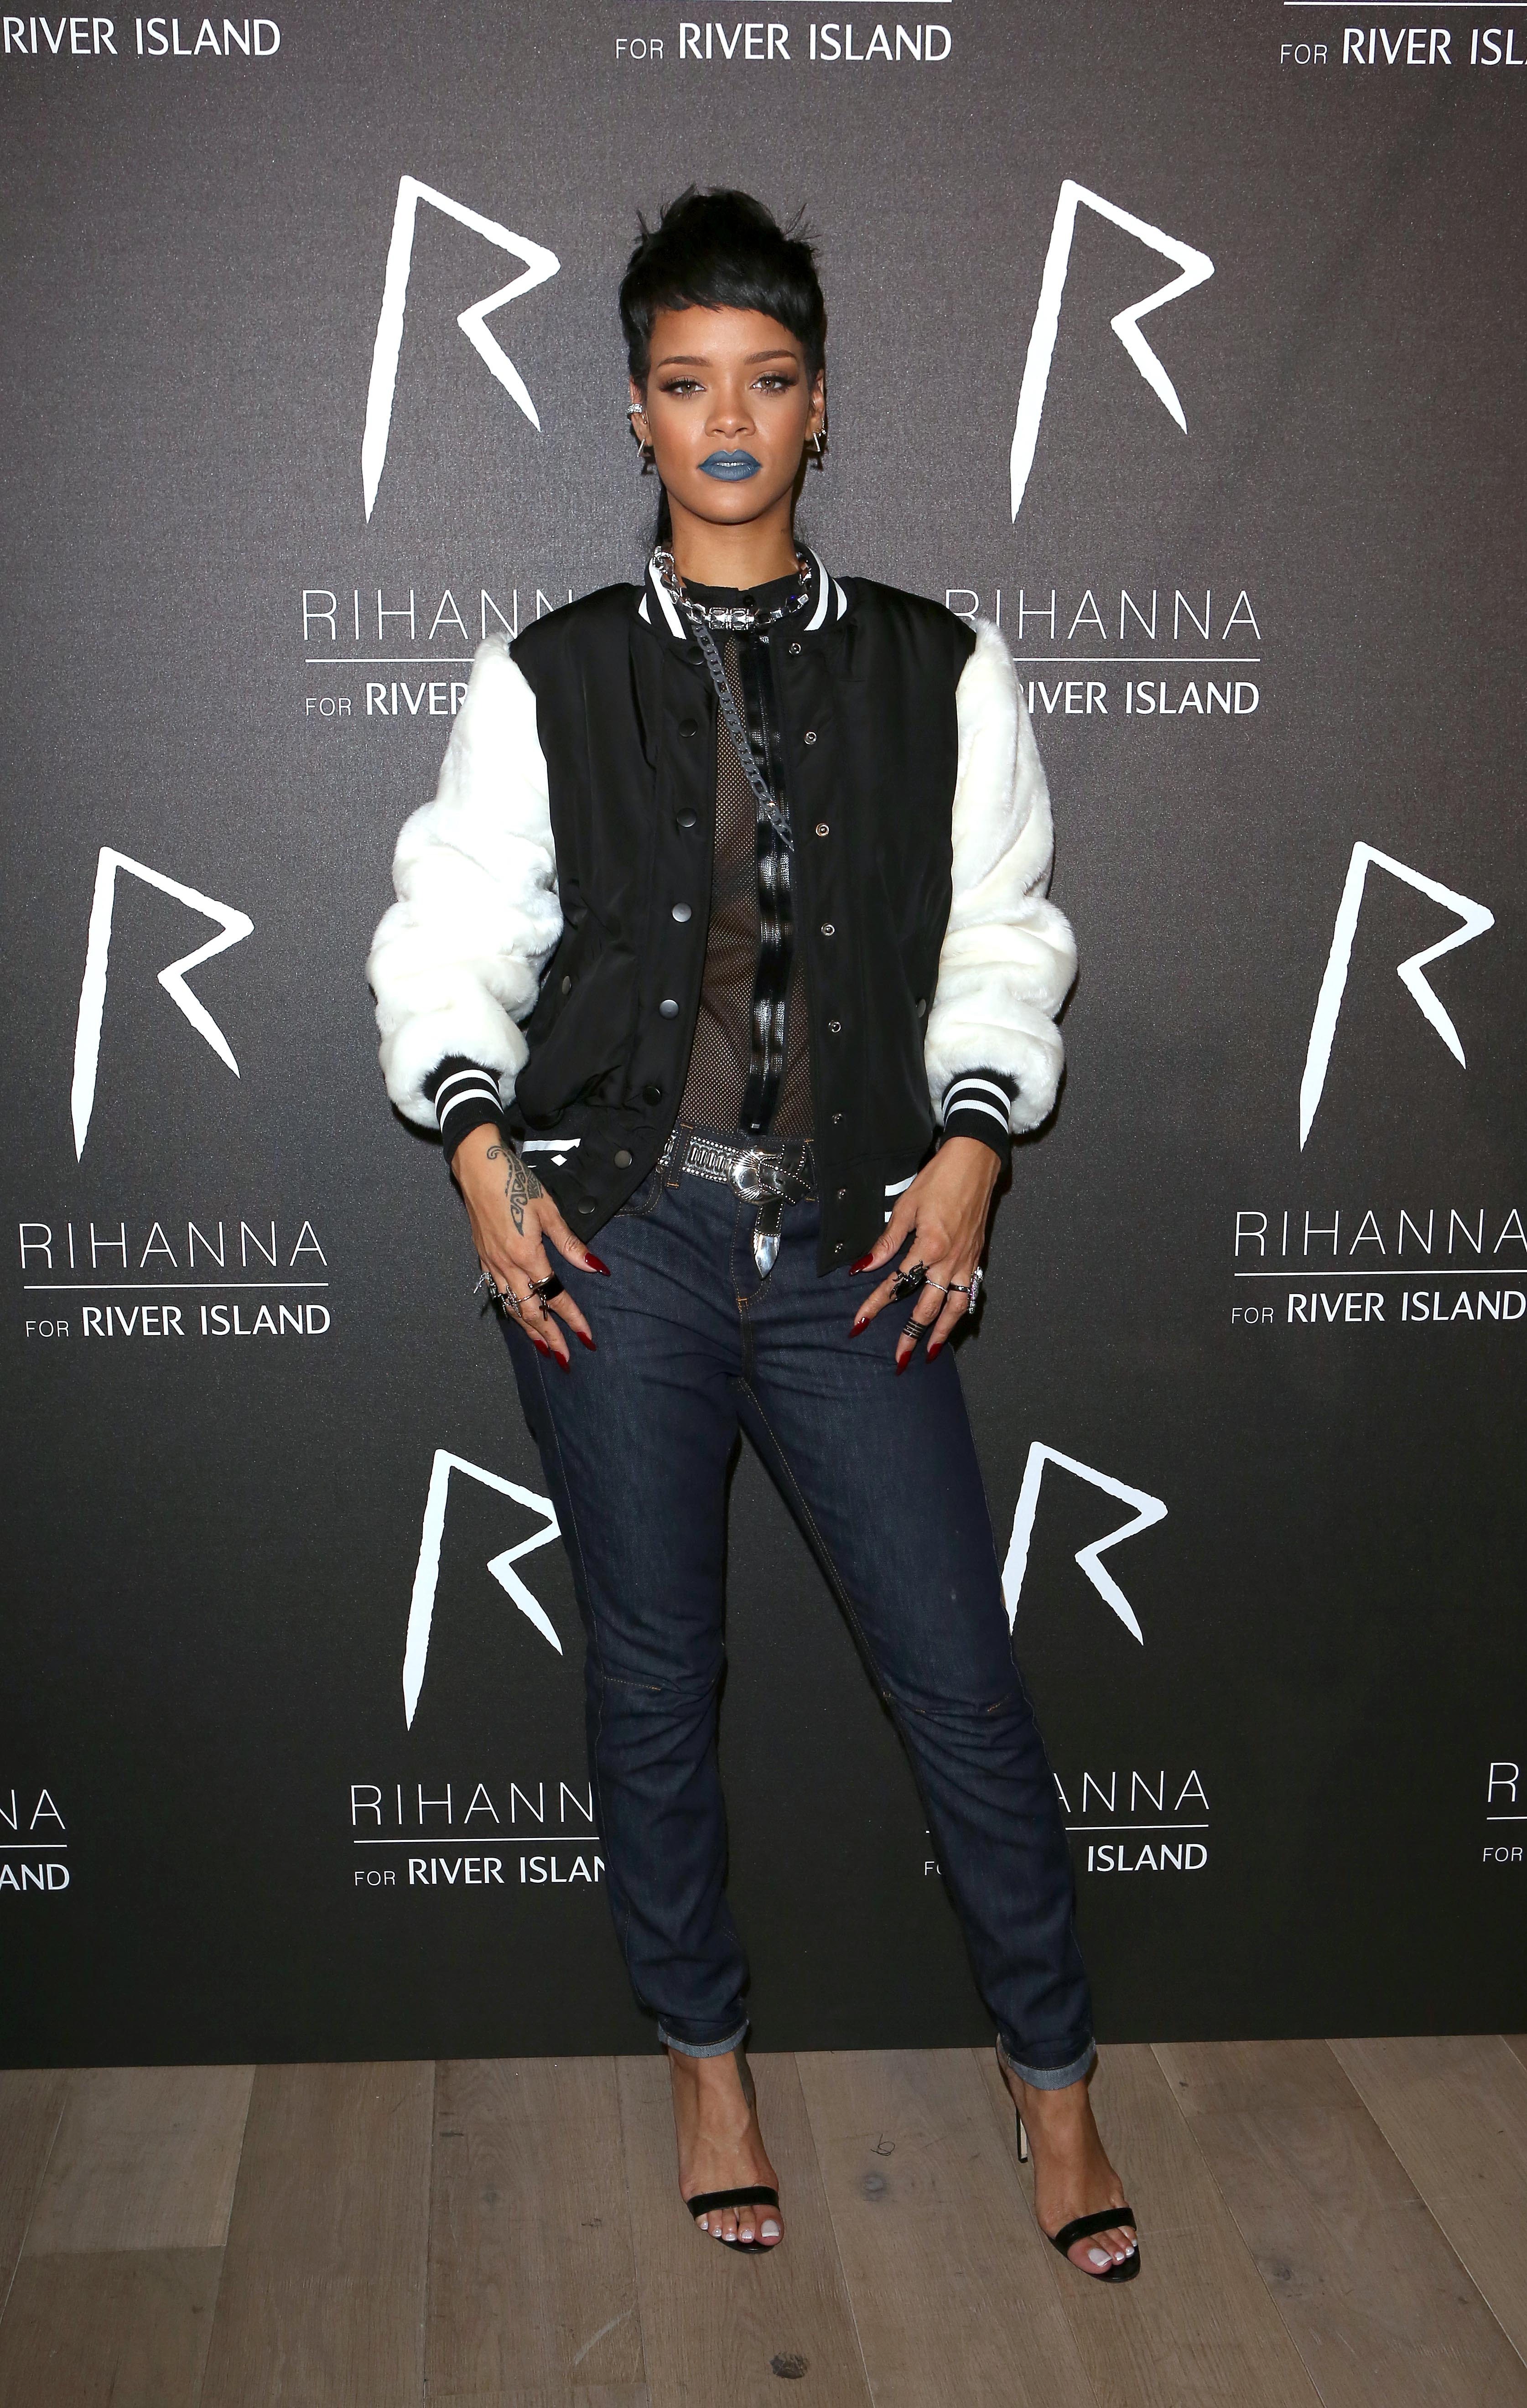 Rihanna for River Island event